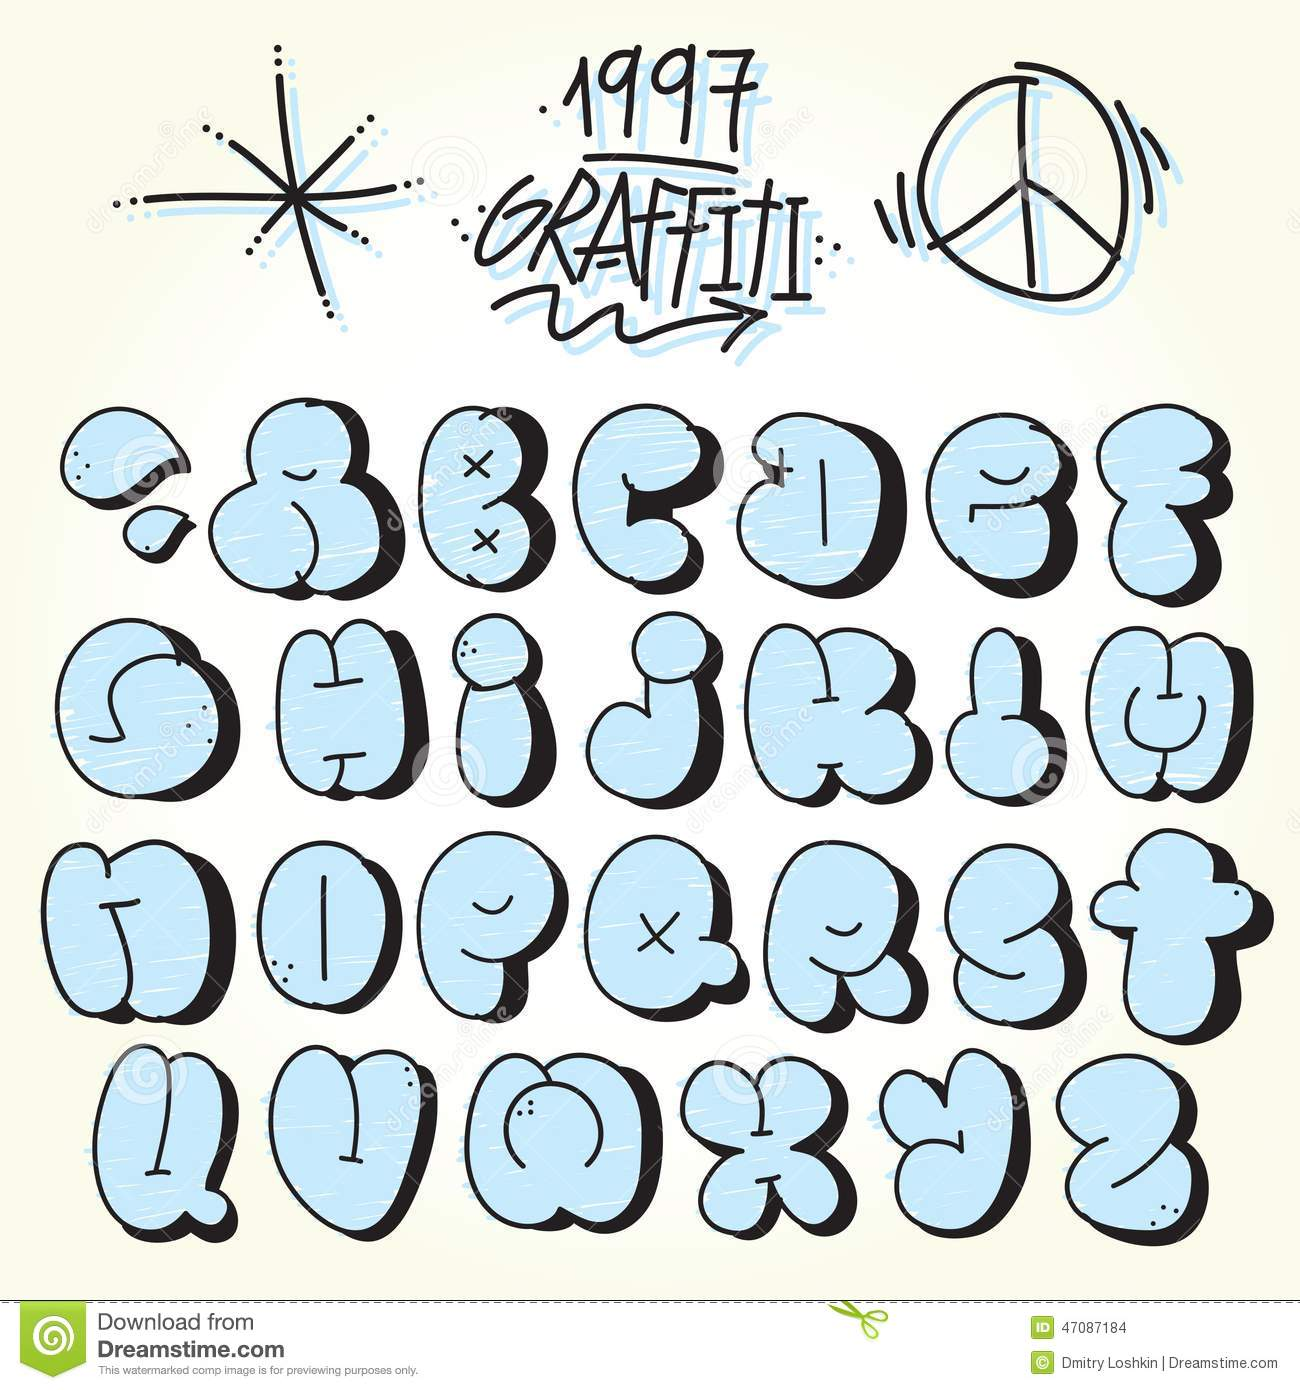 Bubble Graffiti Font Downloads